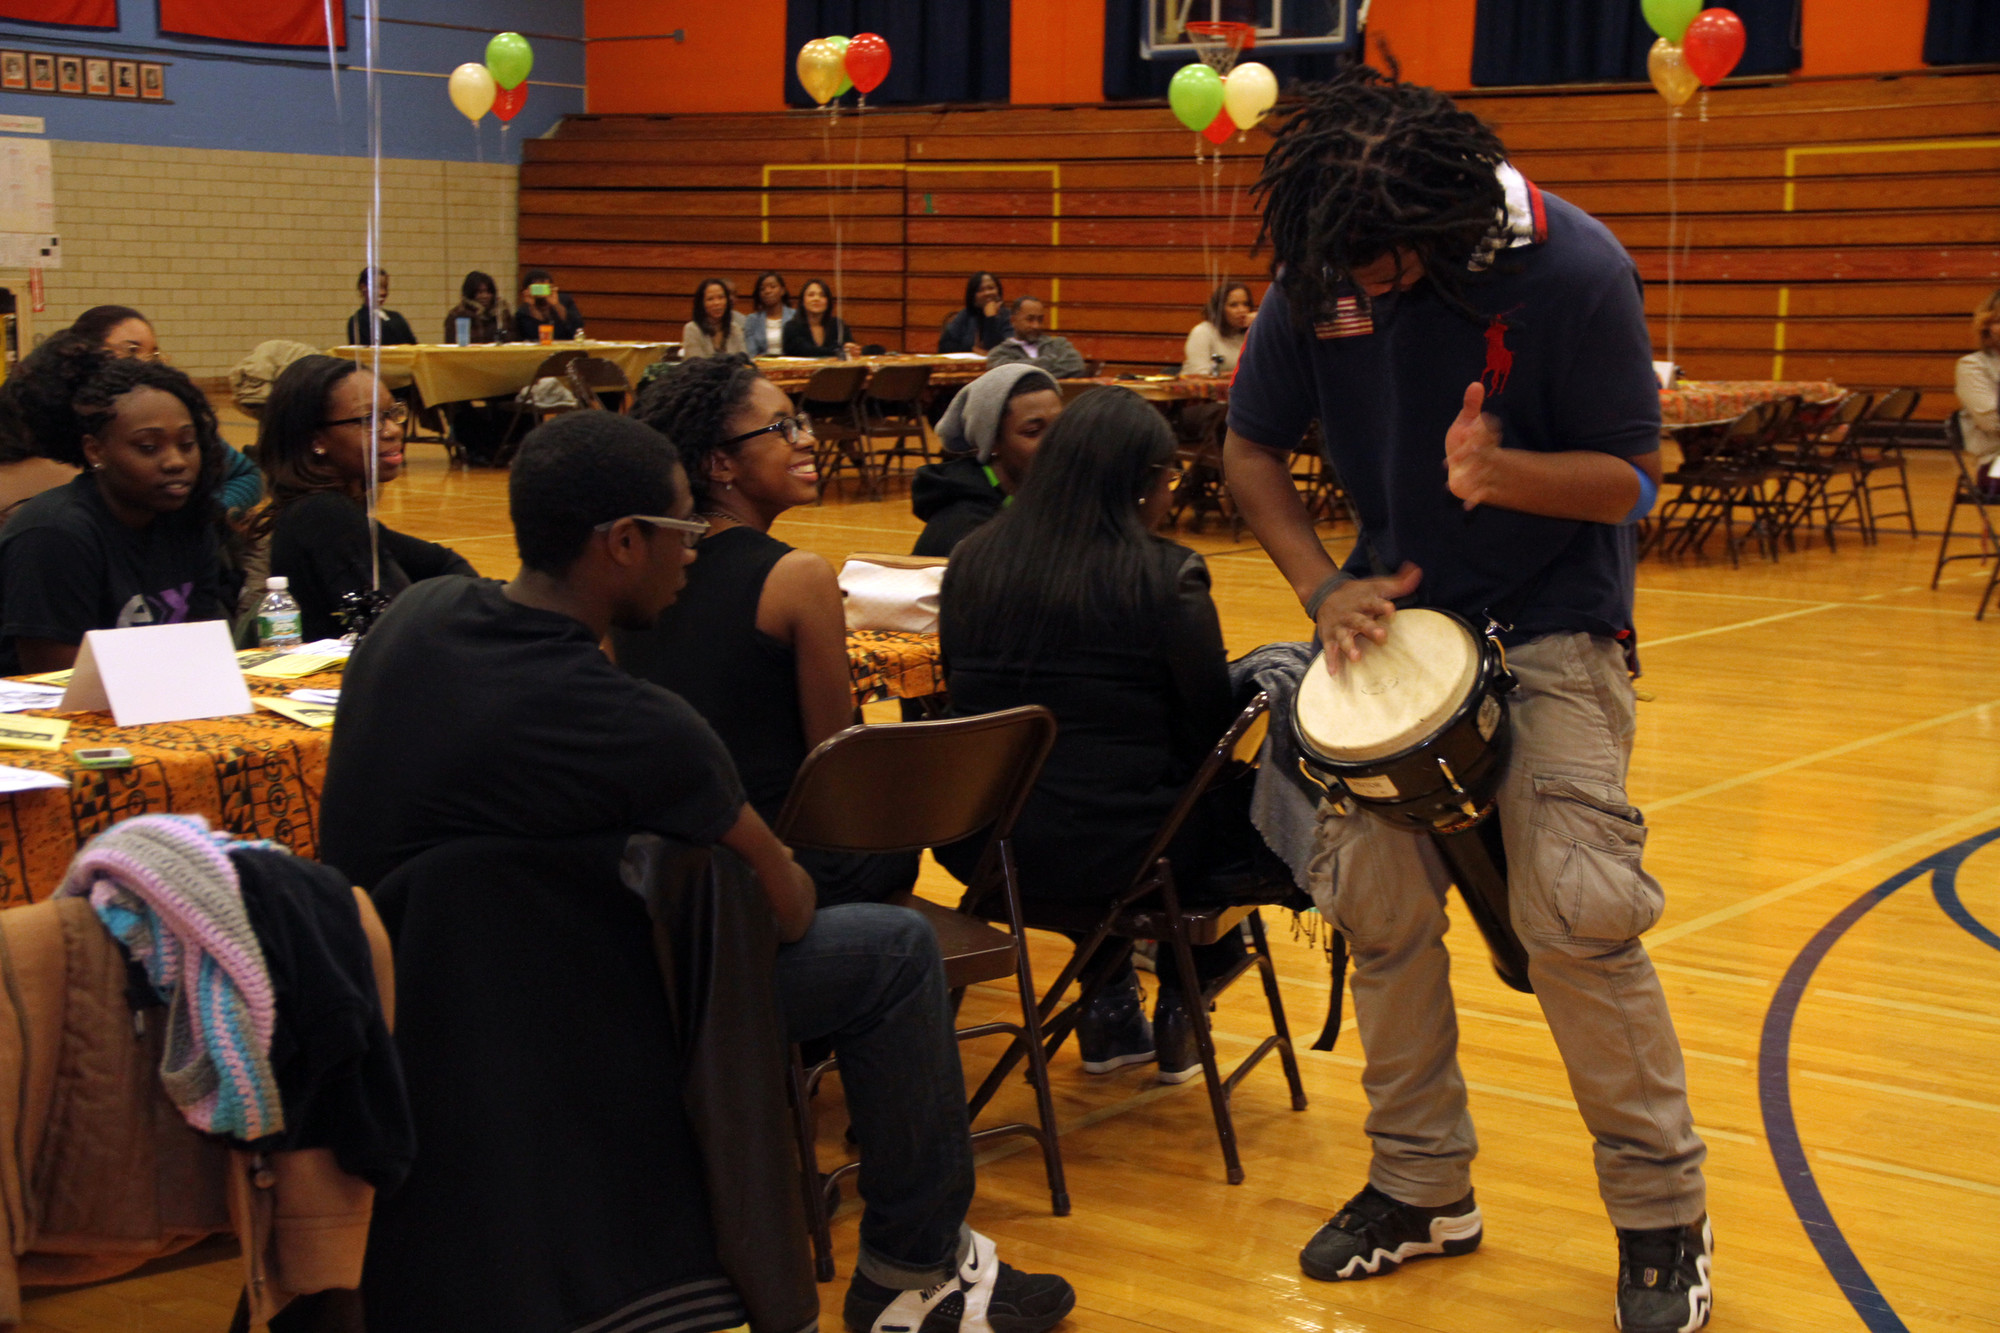 Maurice Facey laid down a rhythm for guests to groove to at Malverne High School's Black History Month celebration on Feb. 27.